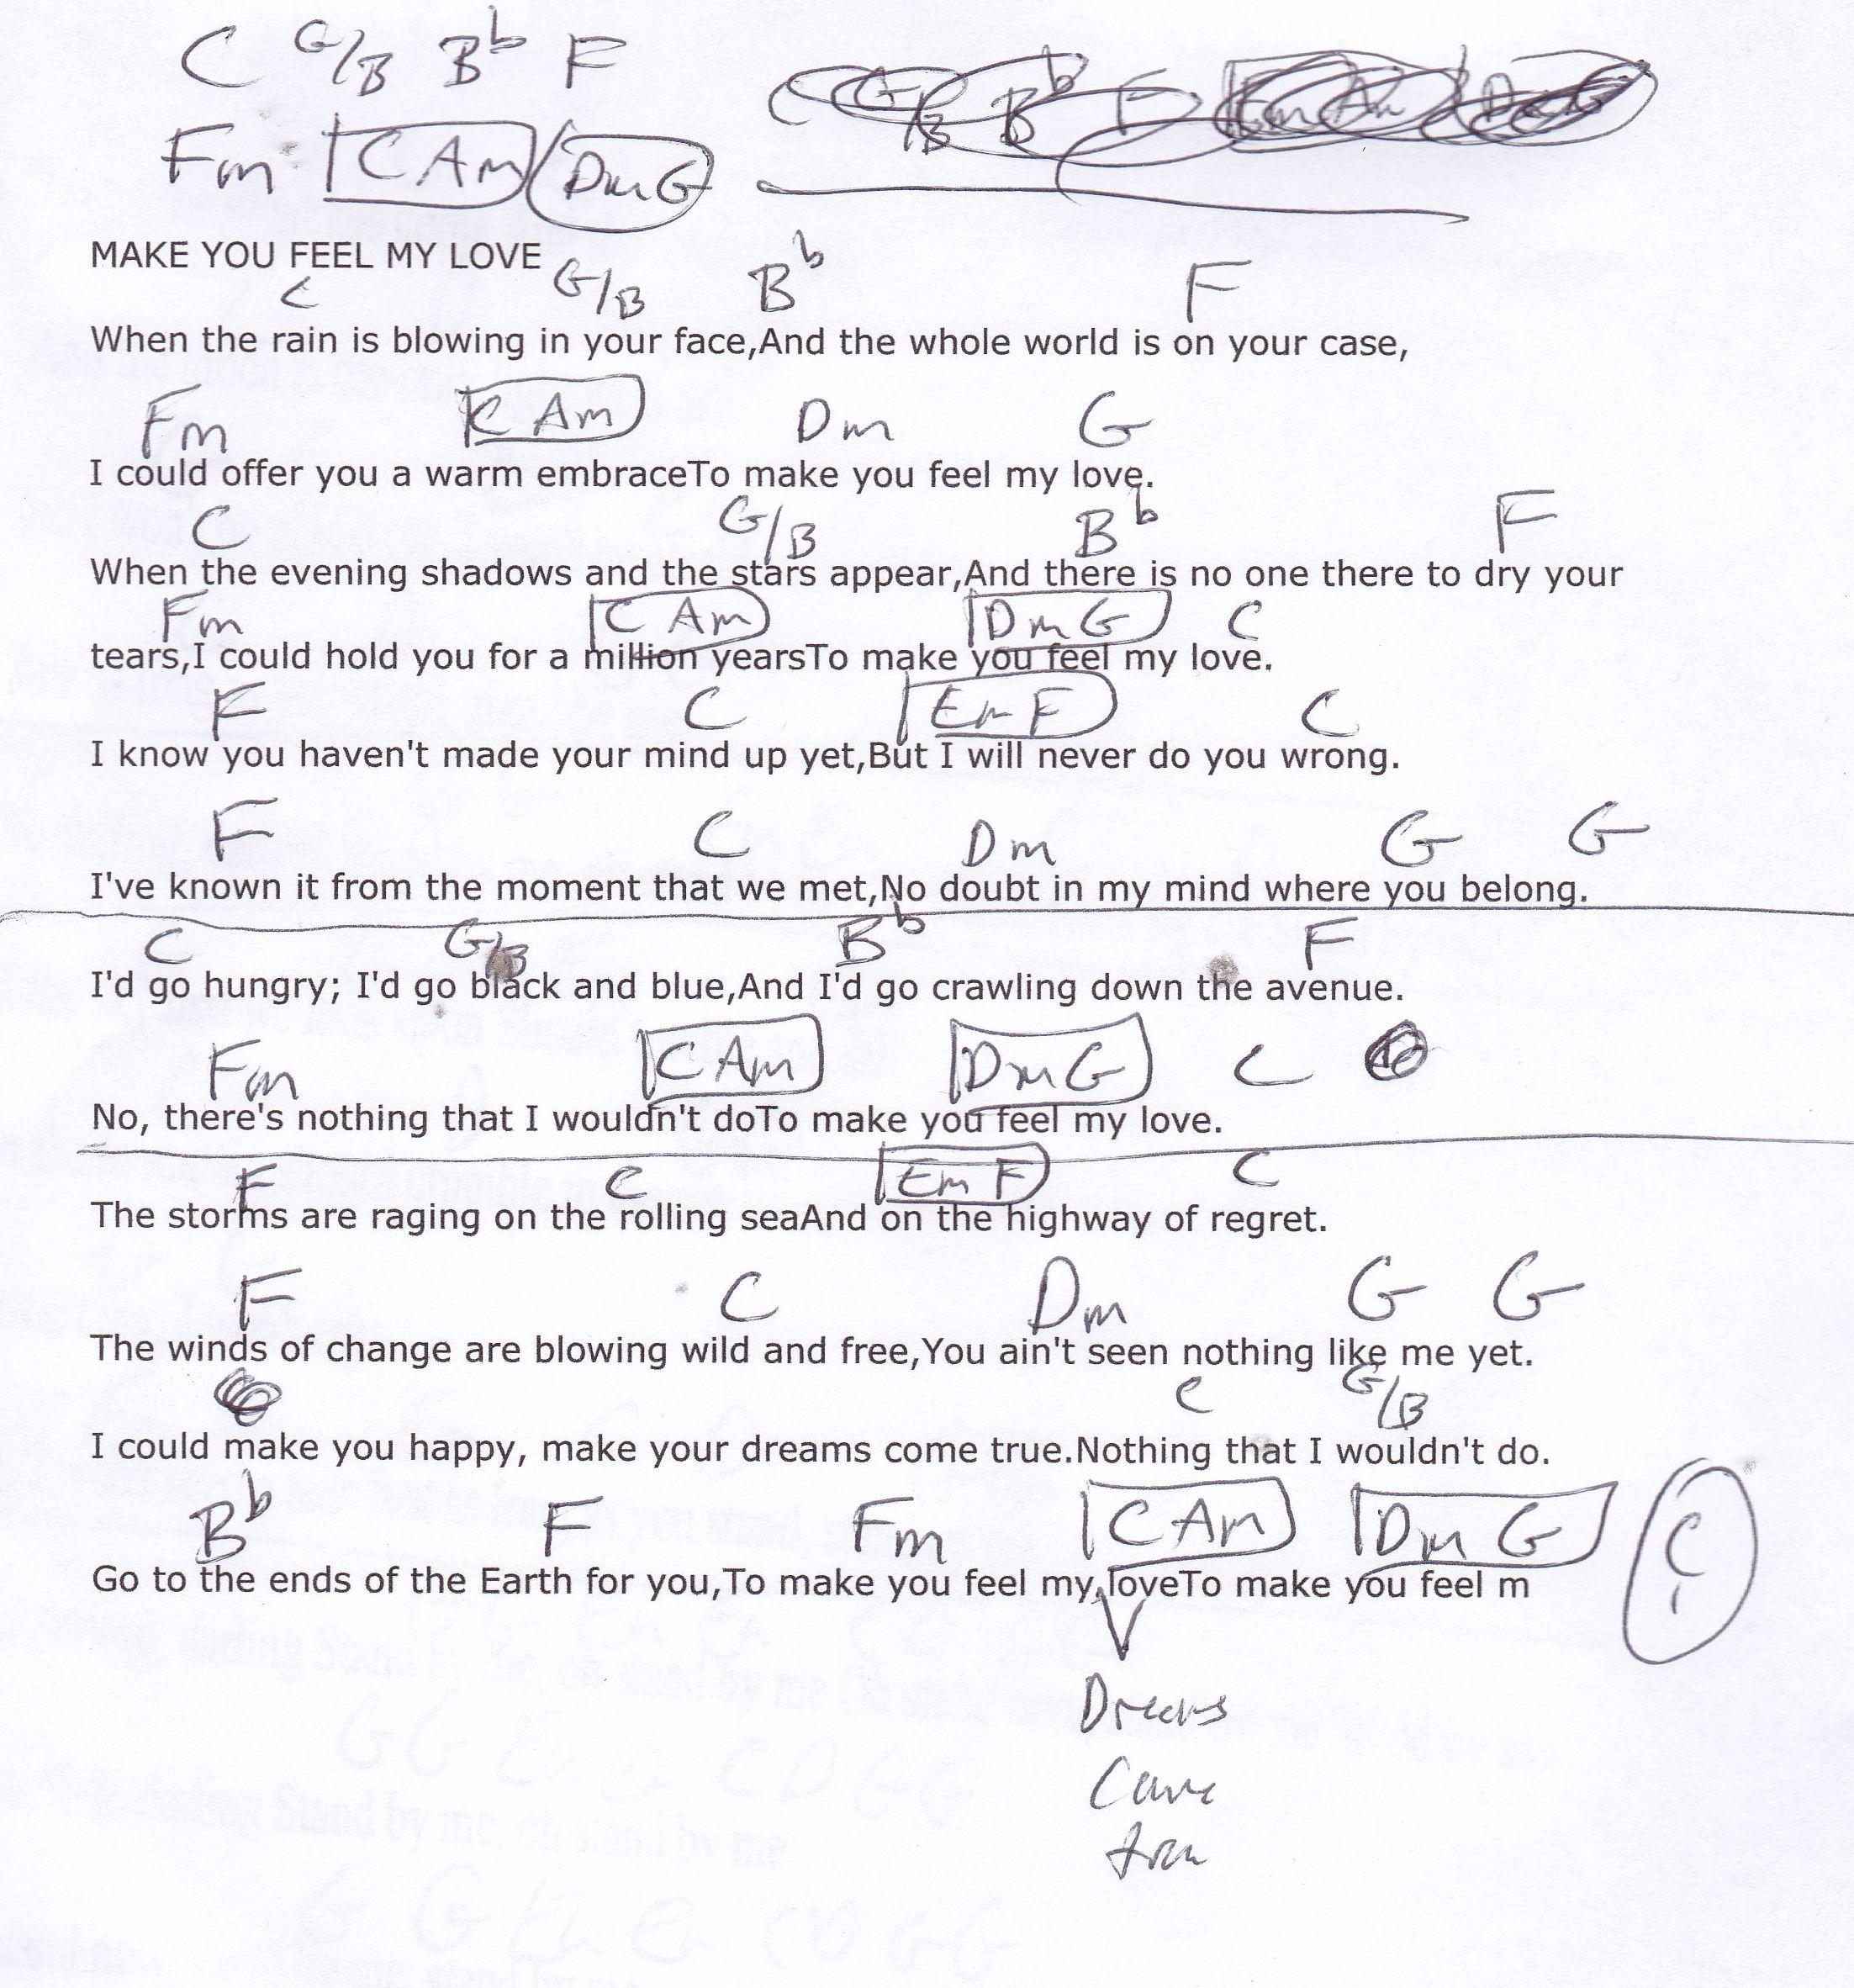 Make you feel my love garth brooks capo 3rd guitar lesson chord make you feel my love garth brooks capo 3rd guitar lesson chord chart hexwebz Image collections